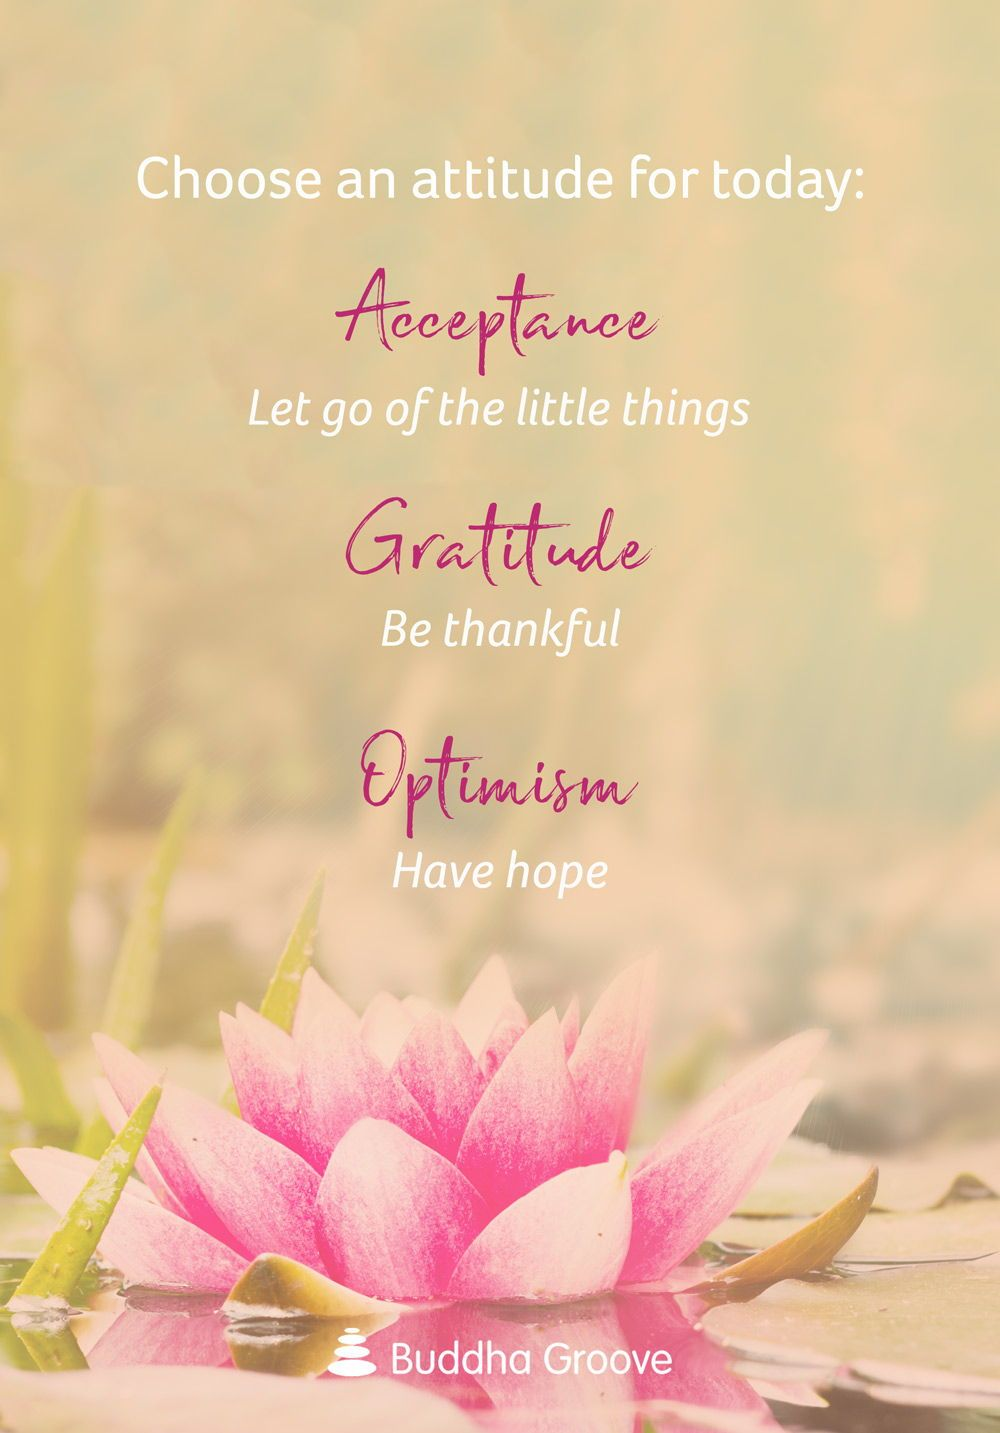 Theme of the Week: Attitude (With images) | Good vibes quotes ...